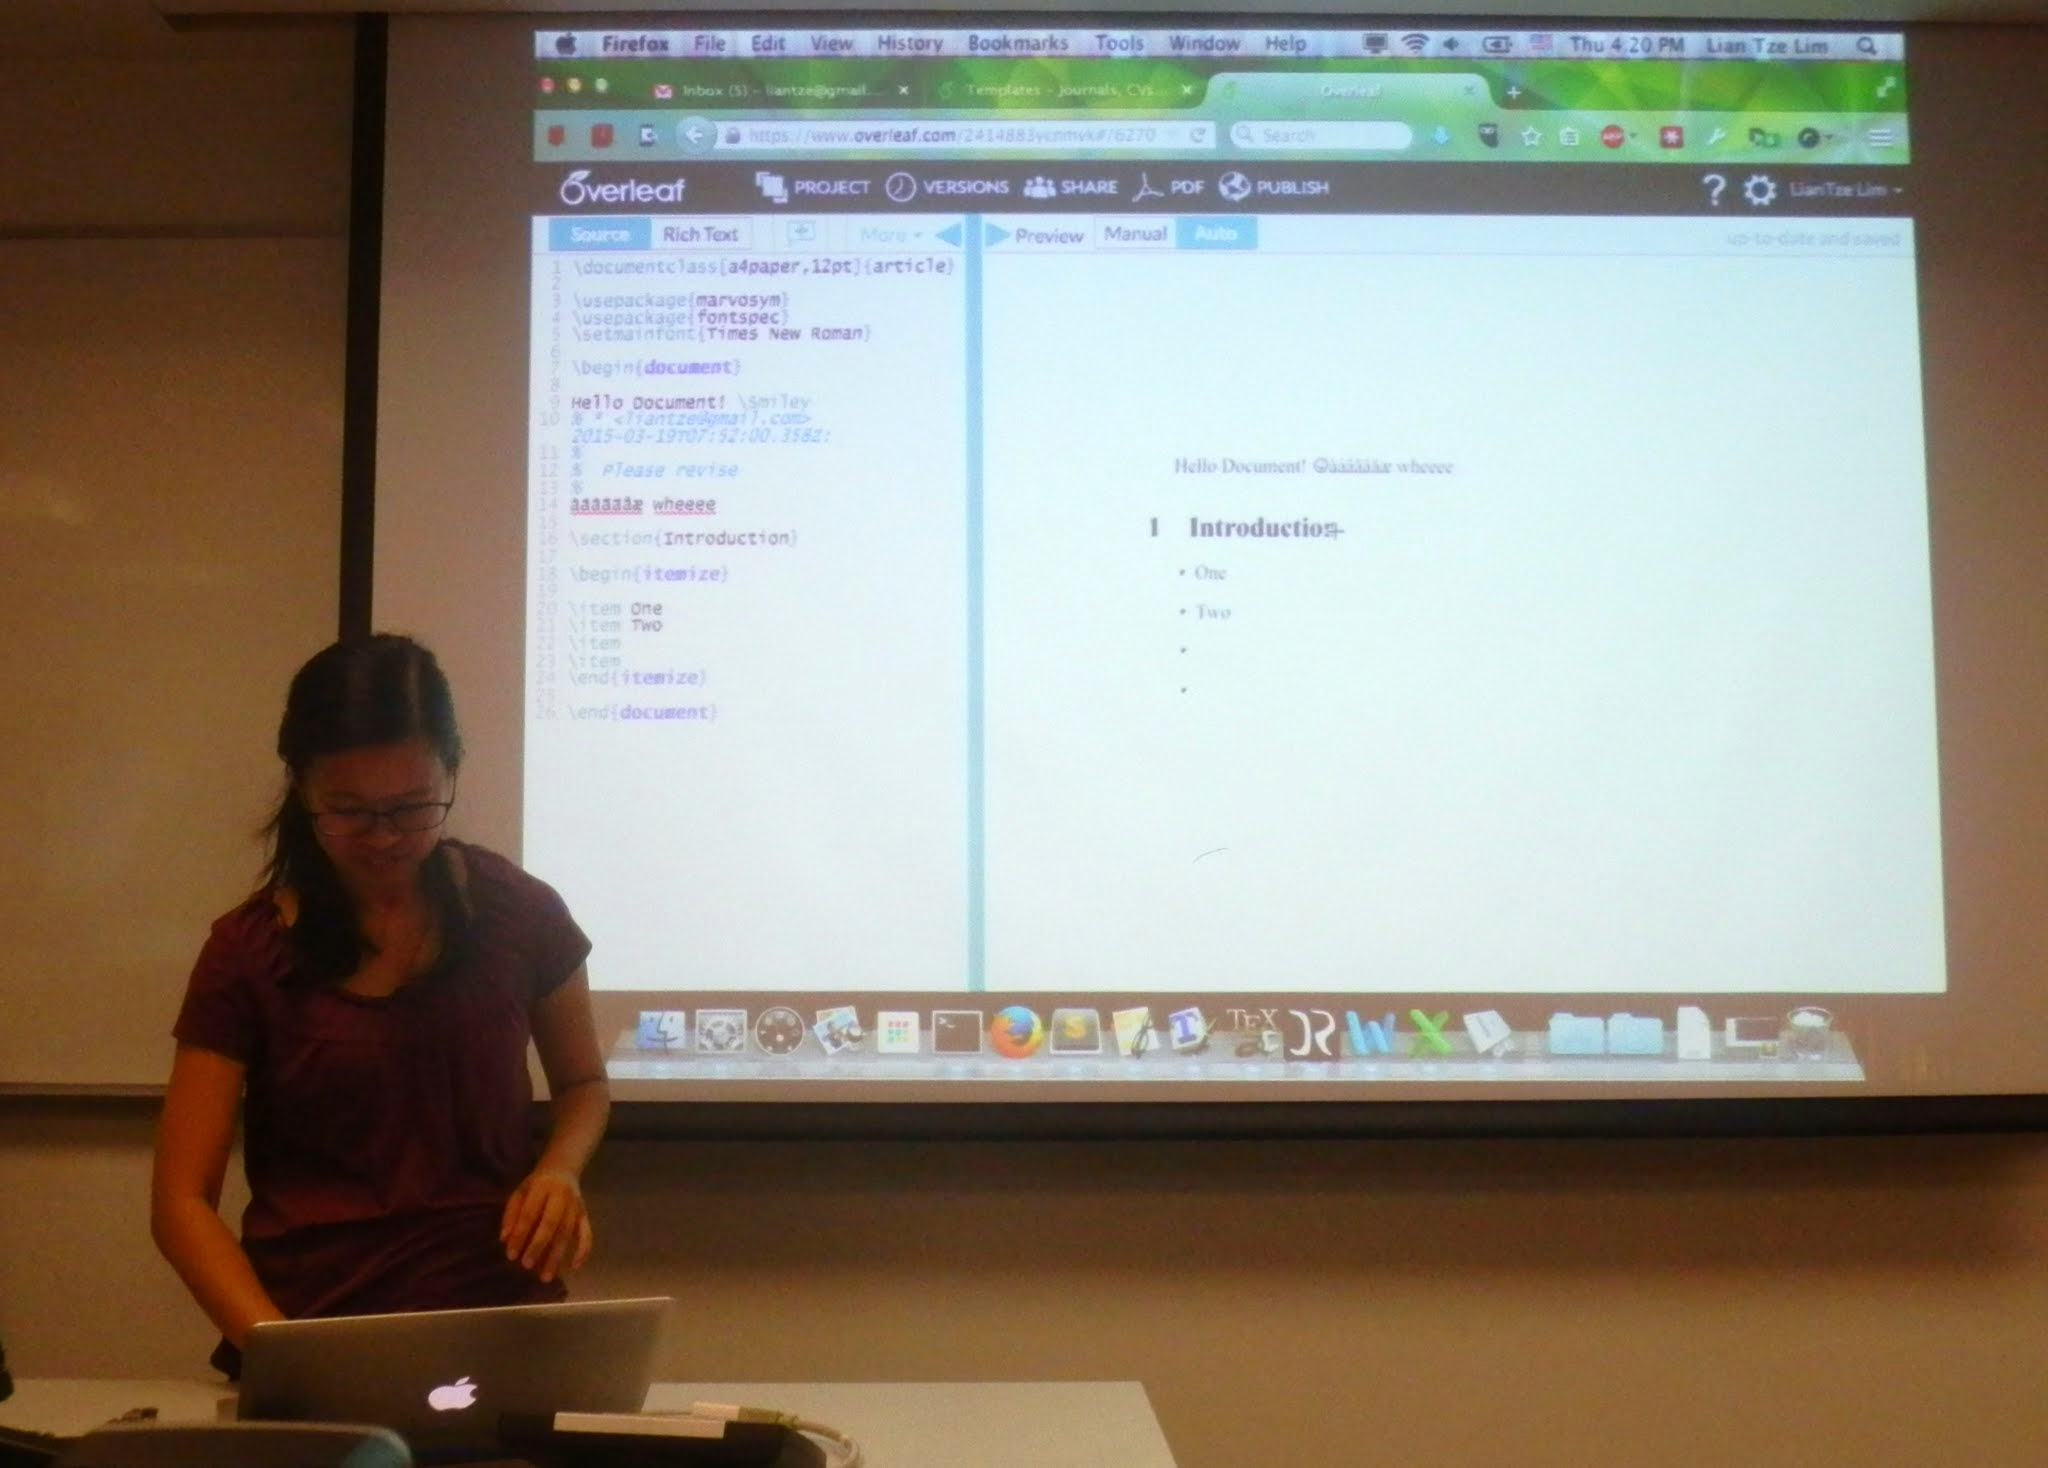 Lian Tze Lim teaching using Overleaf during her LaTeX Workshop for Linguists at HSS NTU